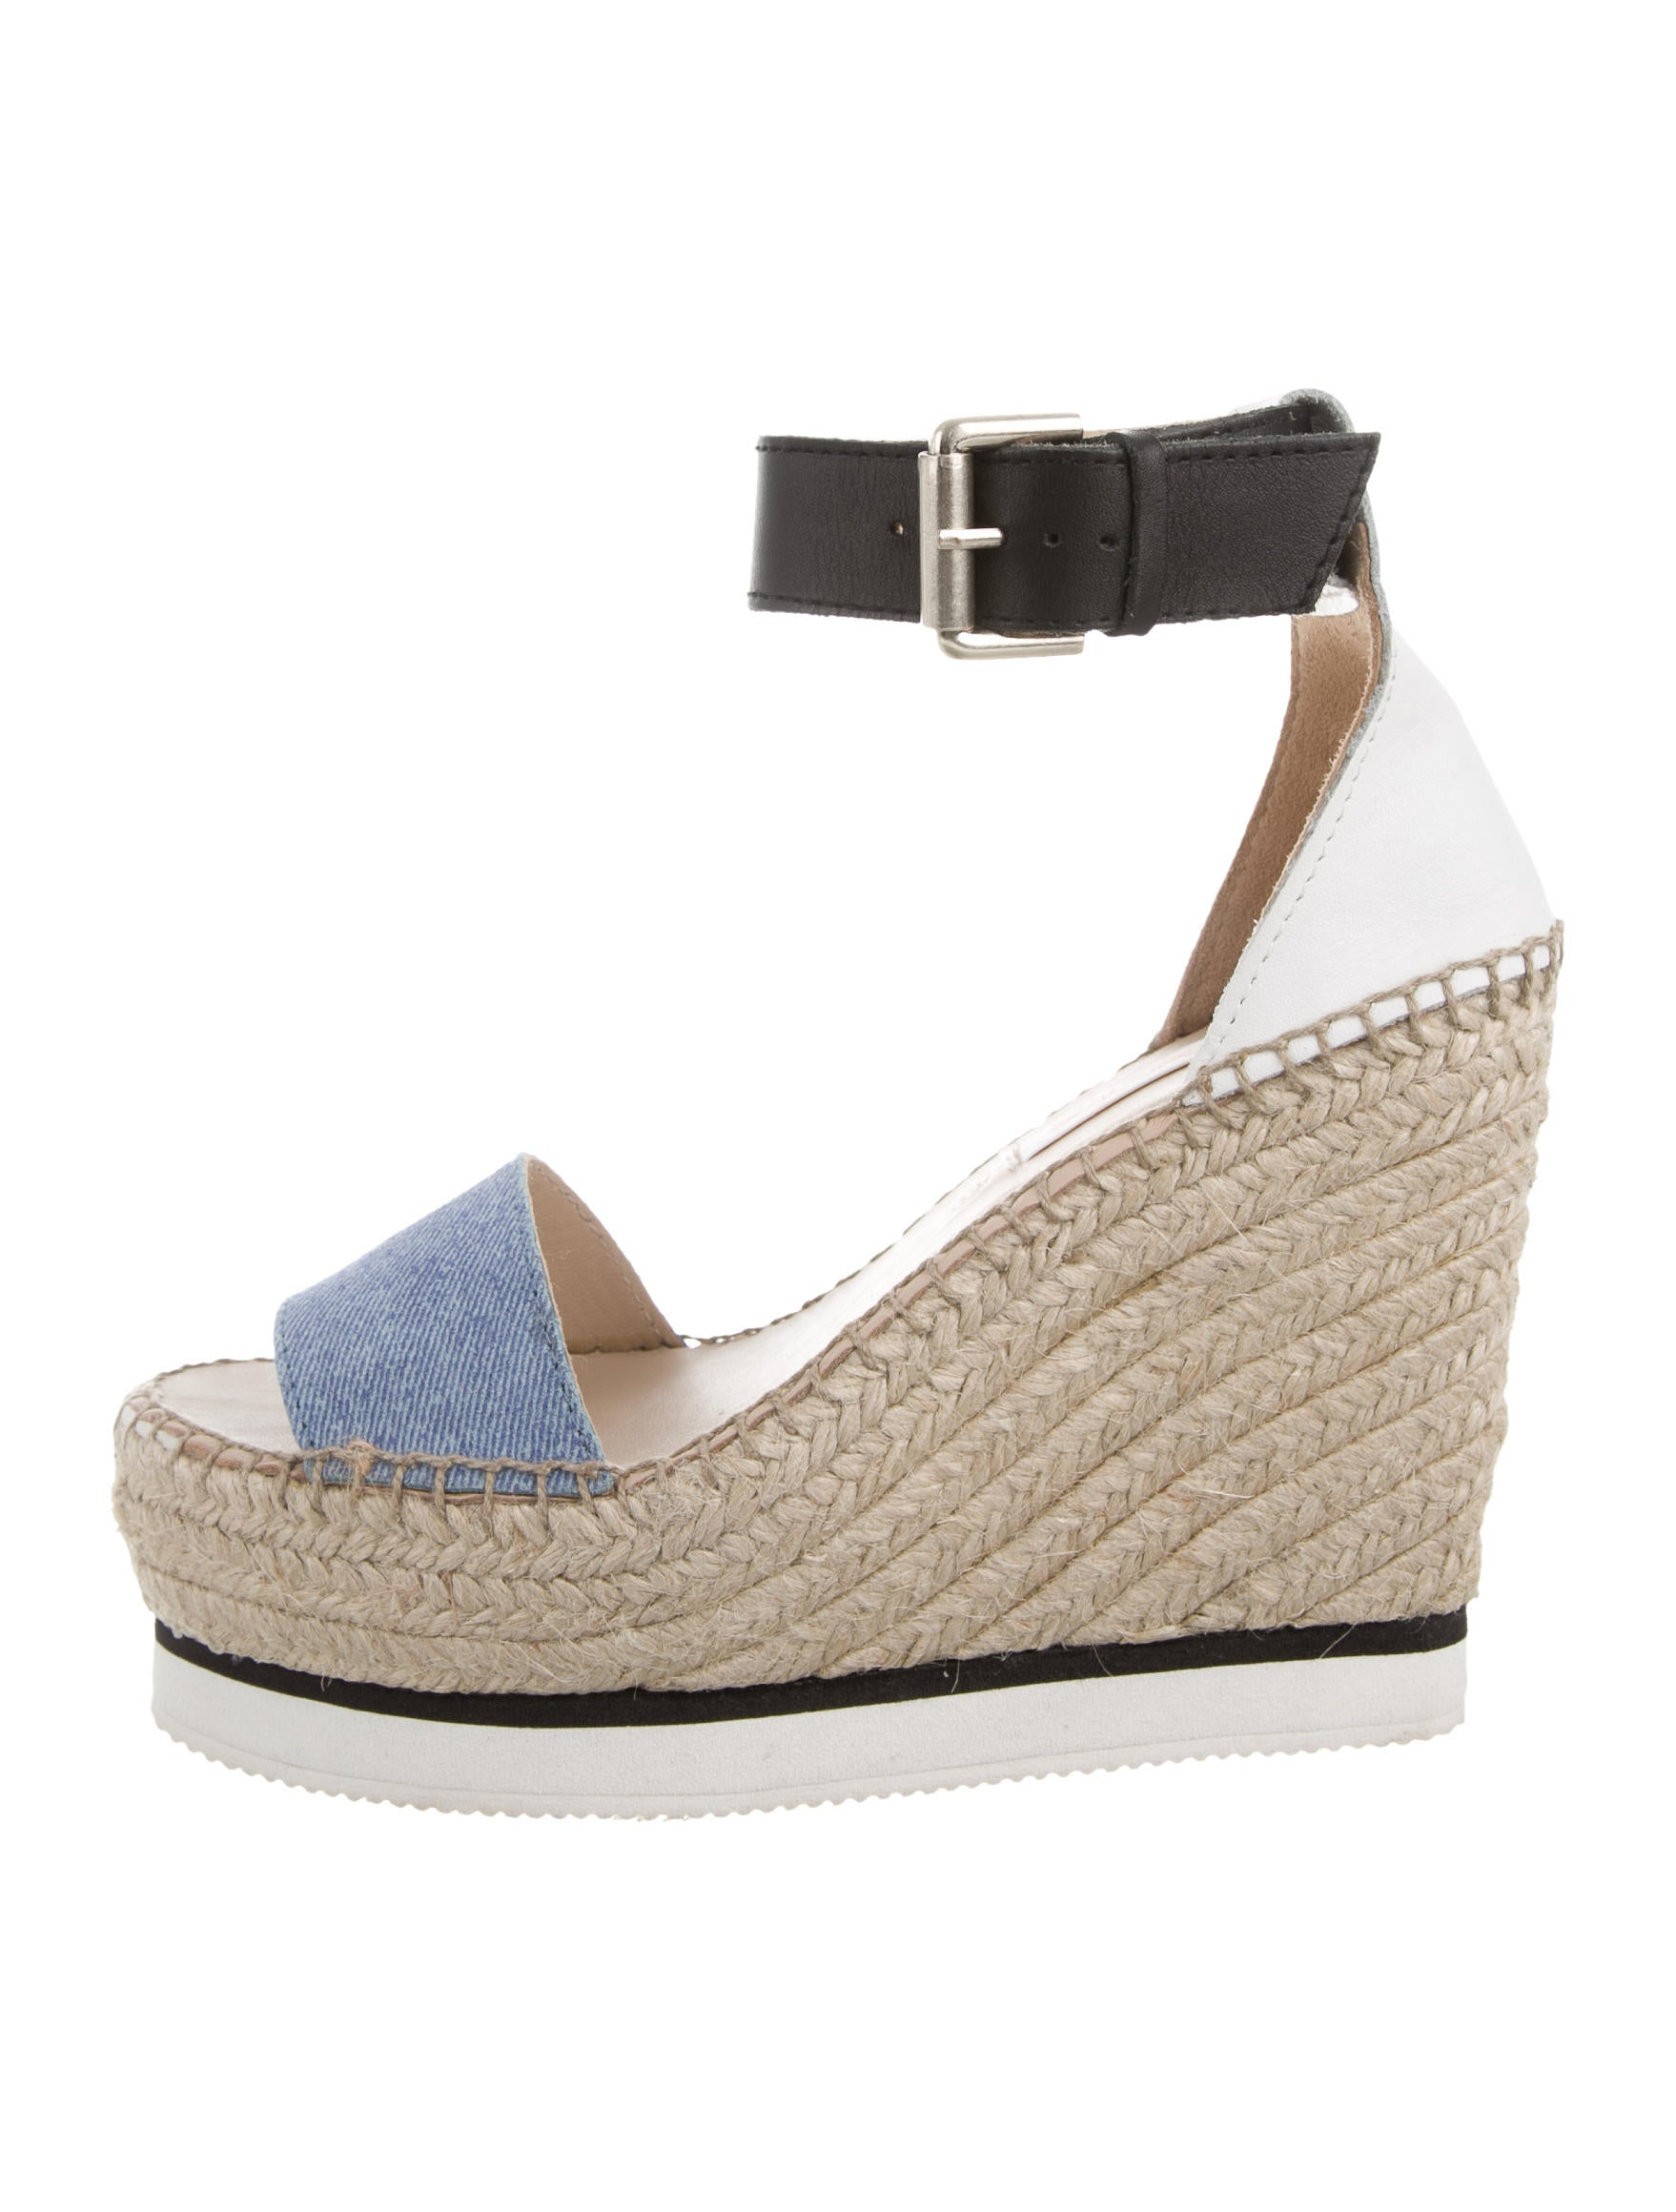 See by Chloé Denim Espadrille Sandals w/ Tags